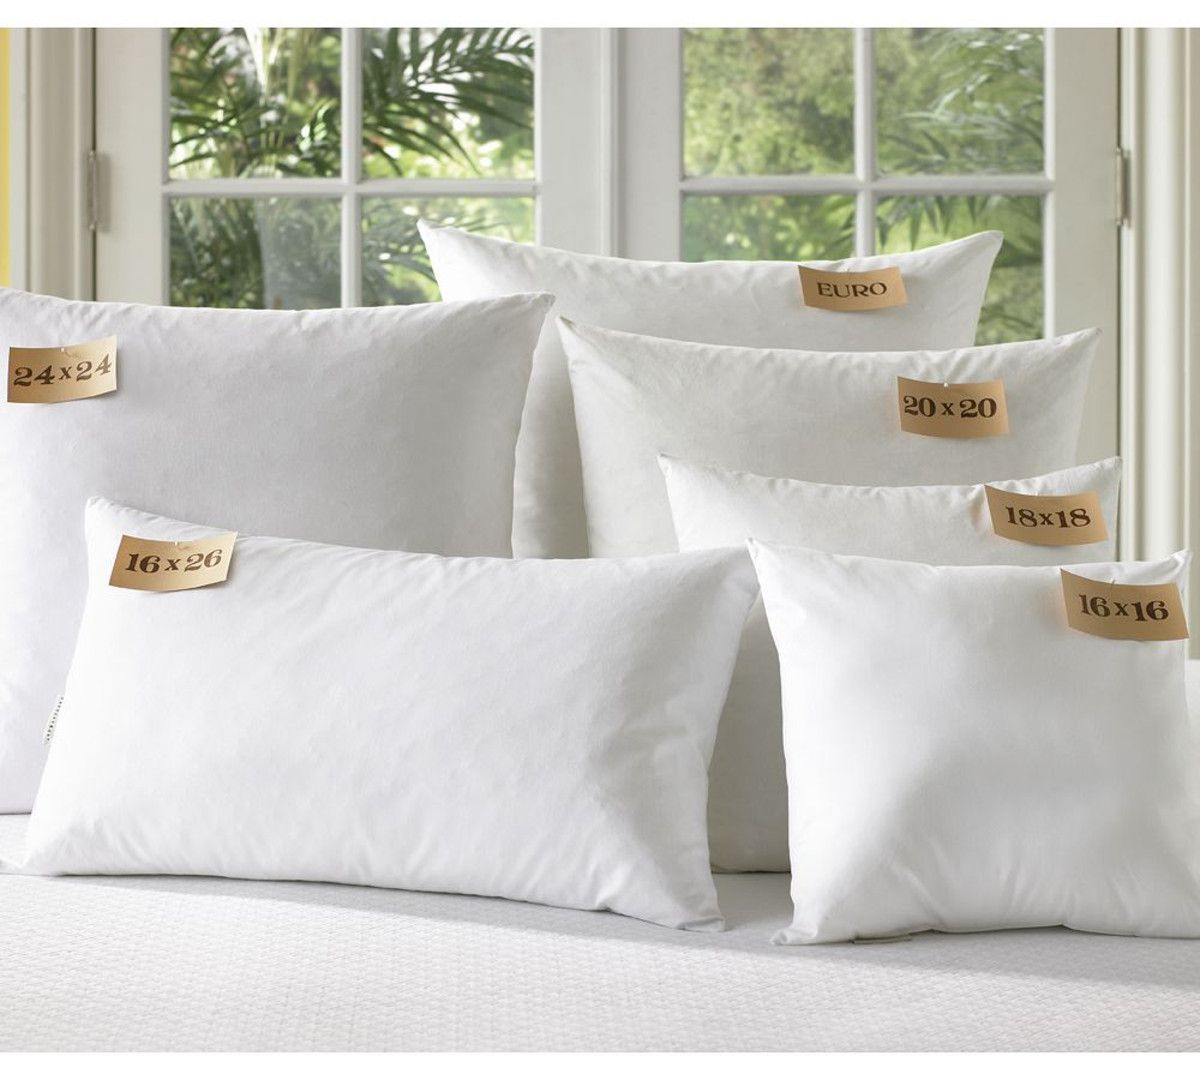 Pottery Barn Pillow Inserts Extraordinary Featherdown Blend Pillow & Cushion Inserts  Pottery Barn Au Inspiration